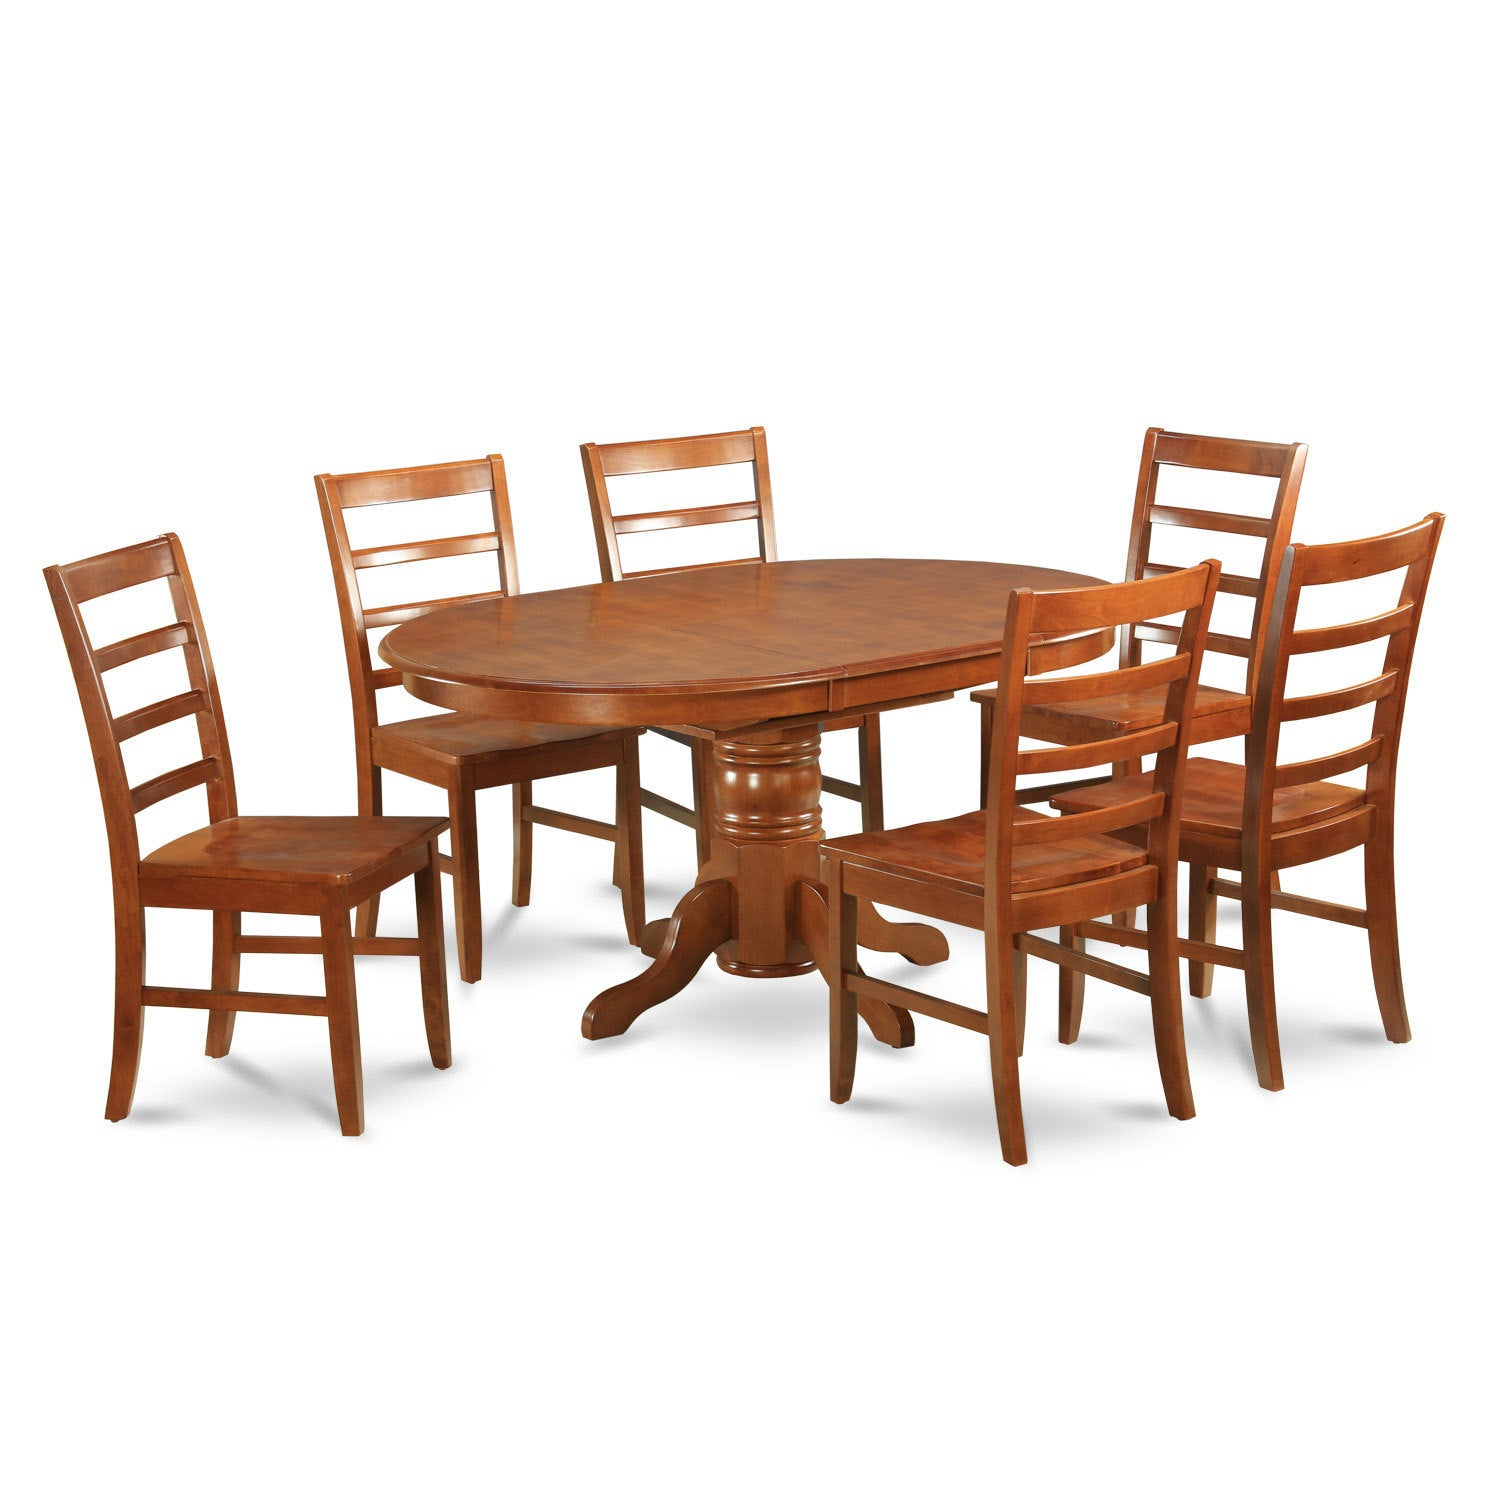 Unbranded 7-piece Oval Dinette Table with Leaf with 6 Din...